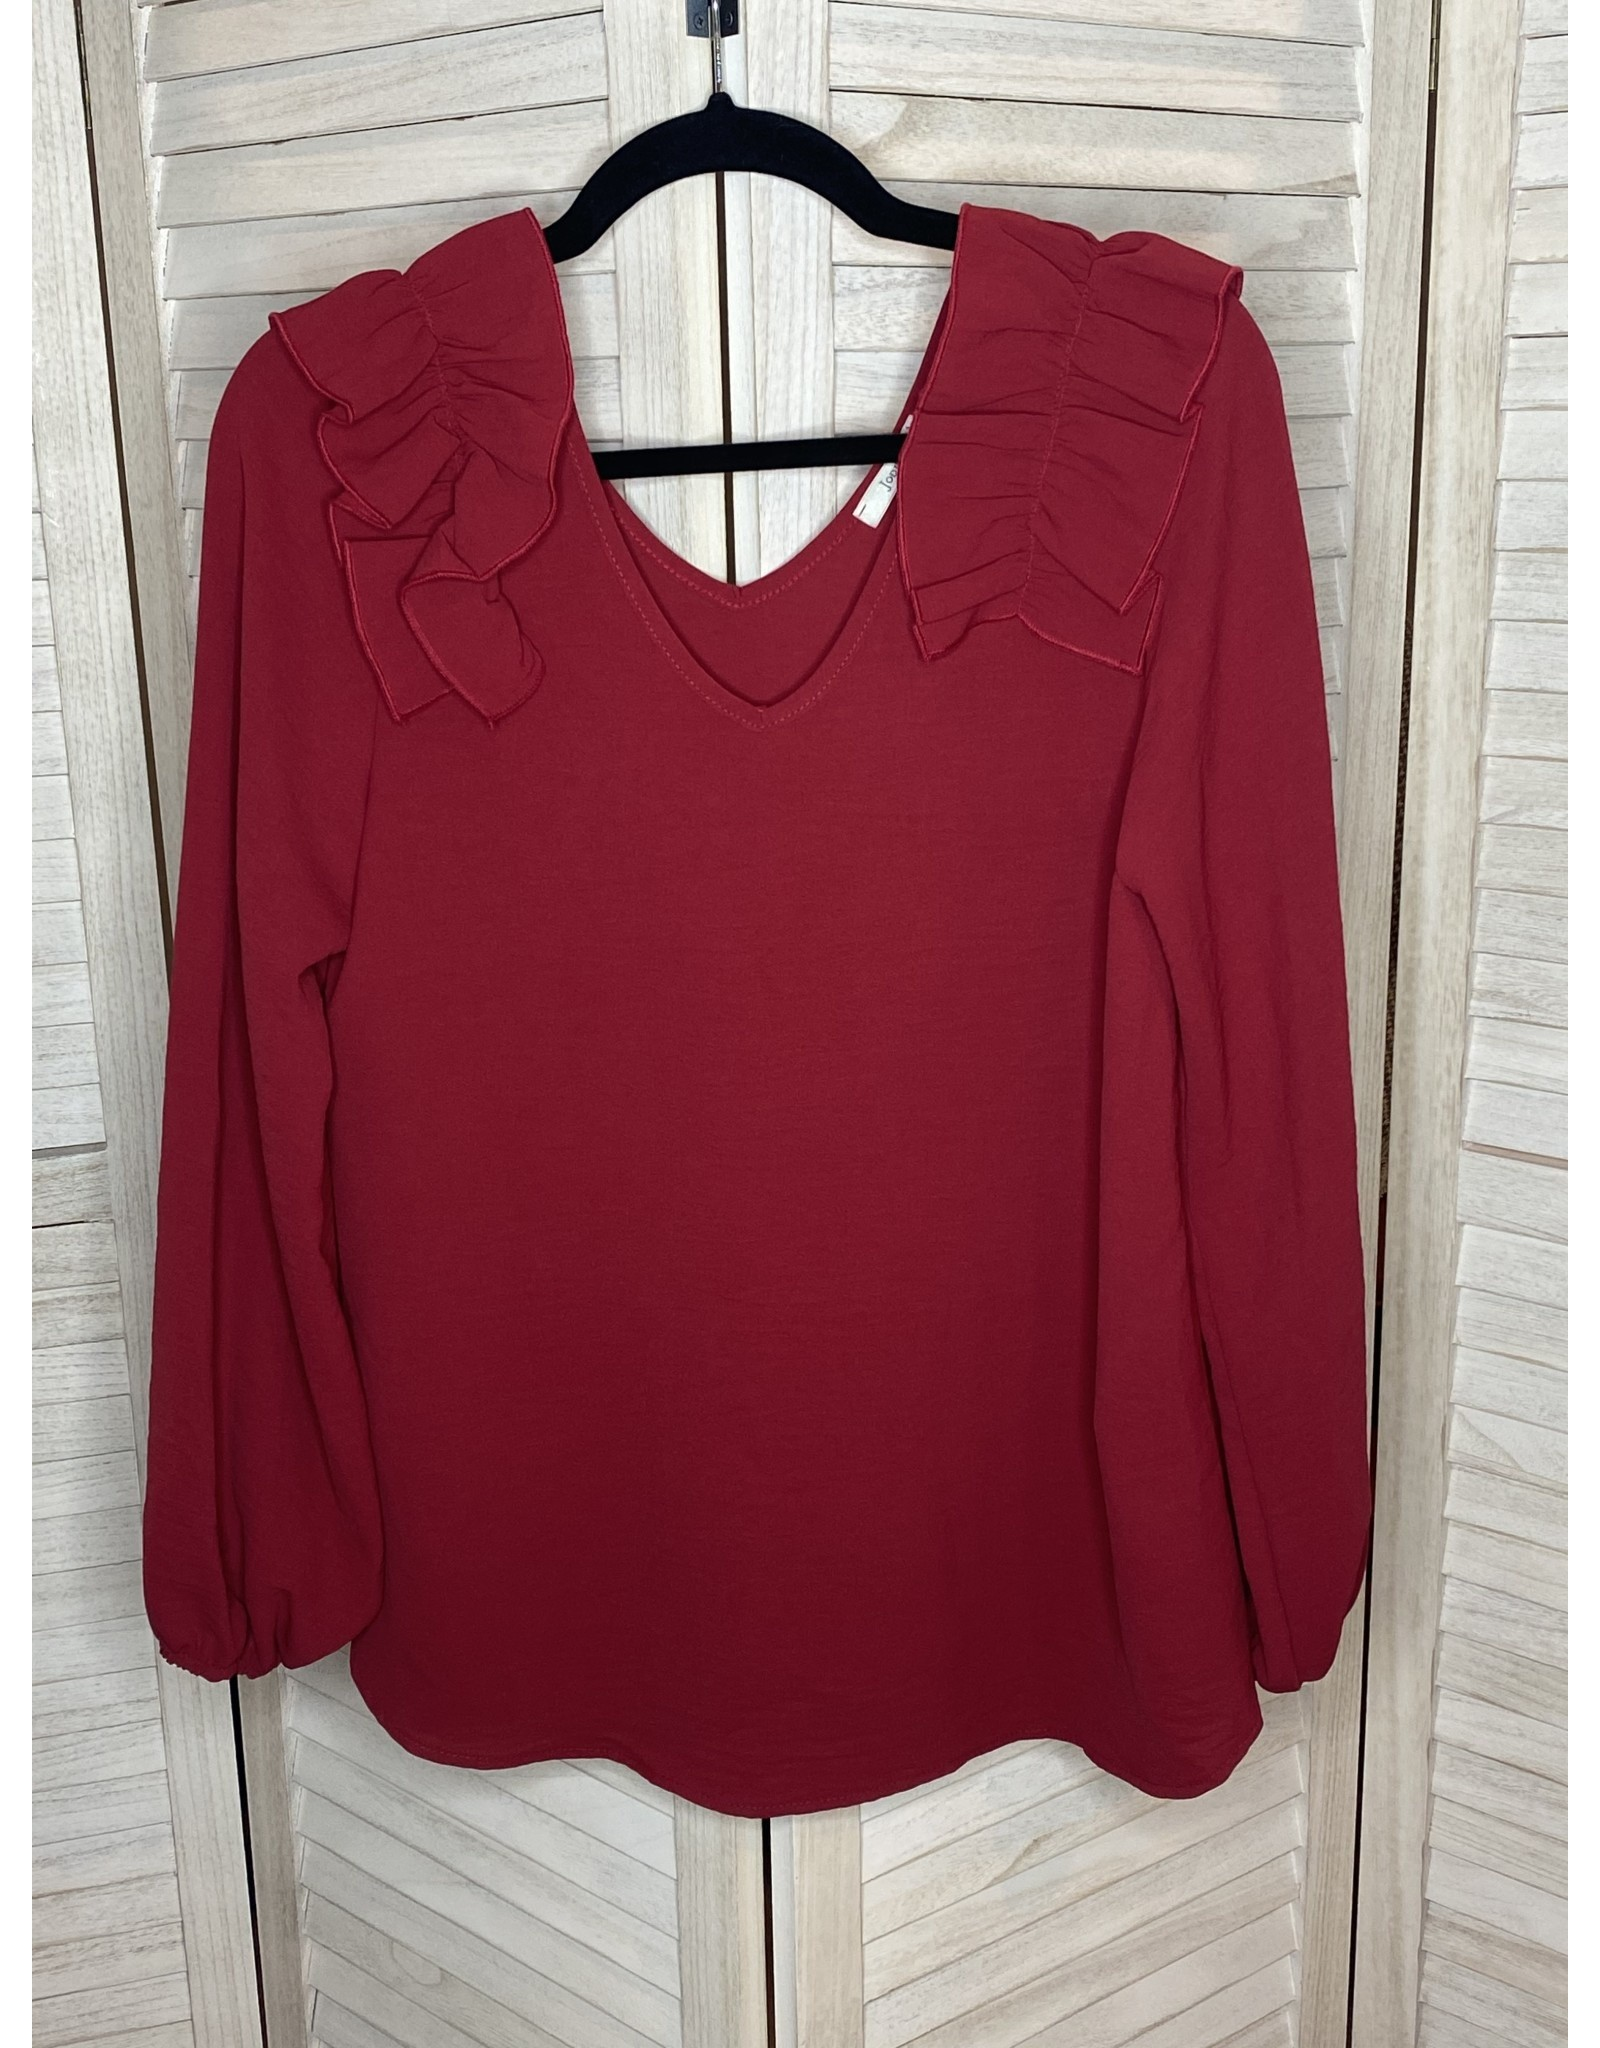 Jodifl Long Sleeve Ruffle at Shoulder  Top Burgundy